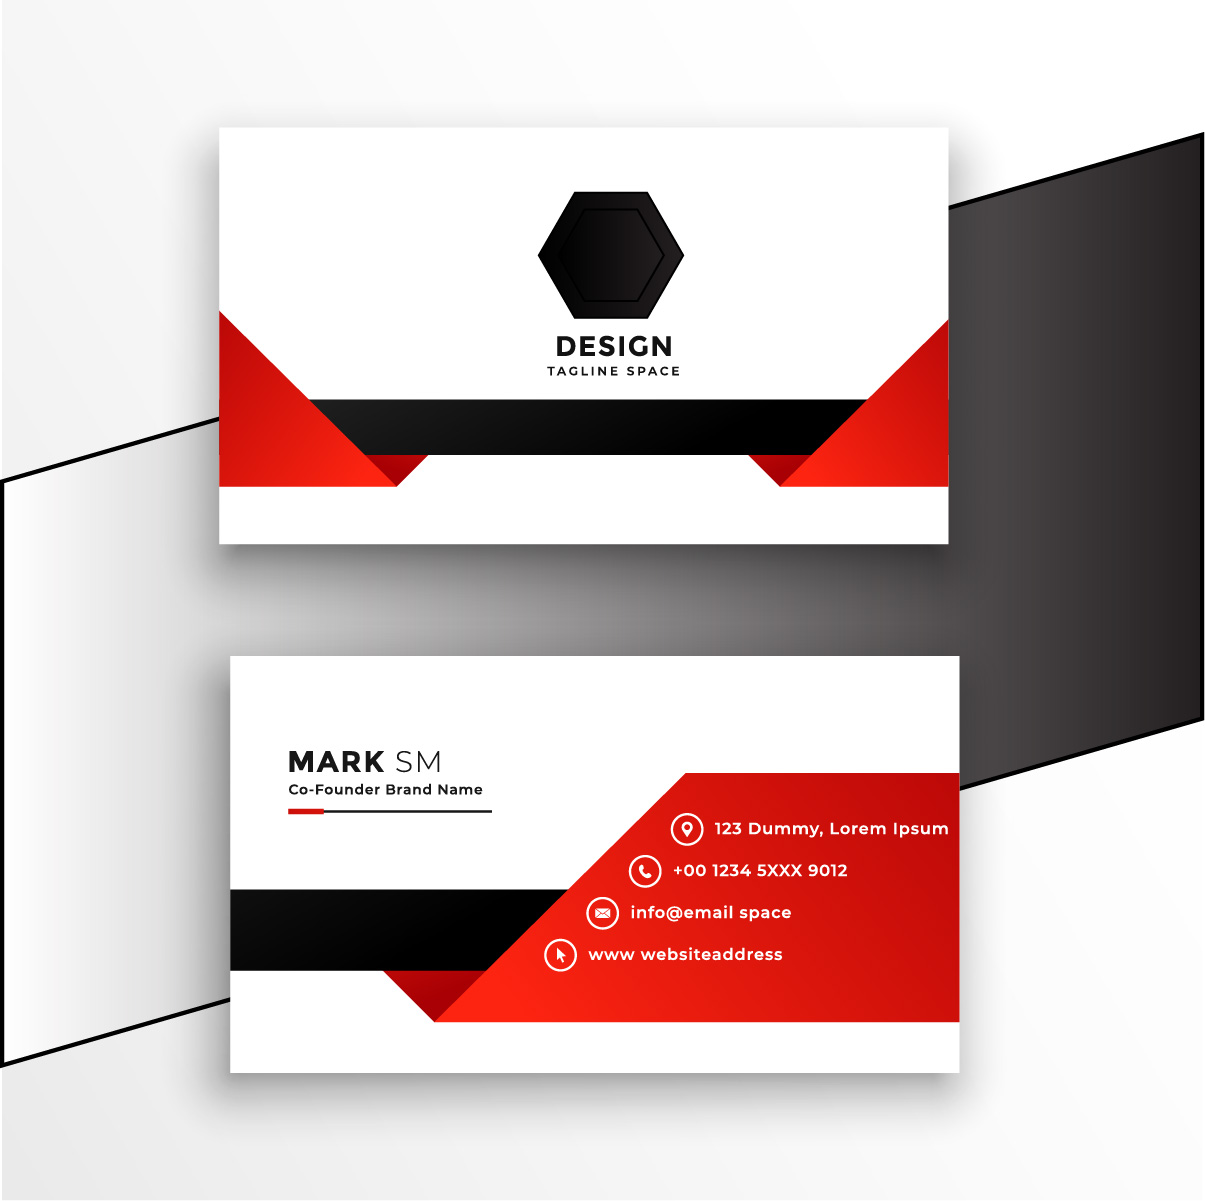 I will design an awesome business card